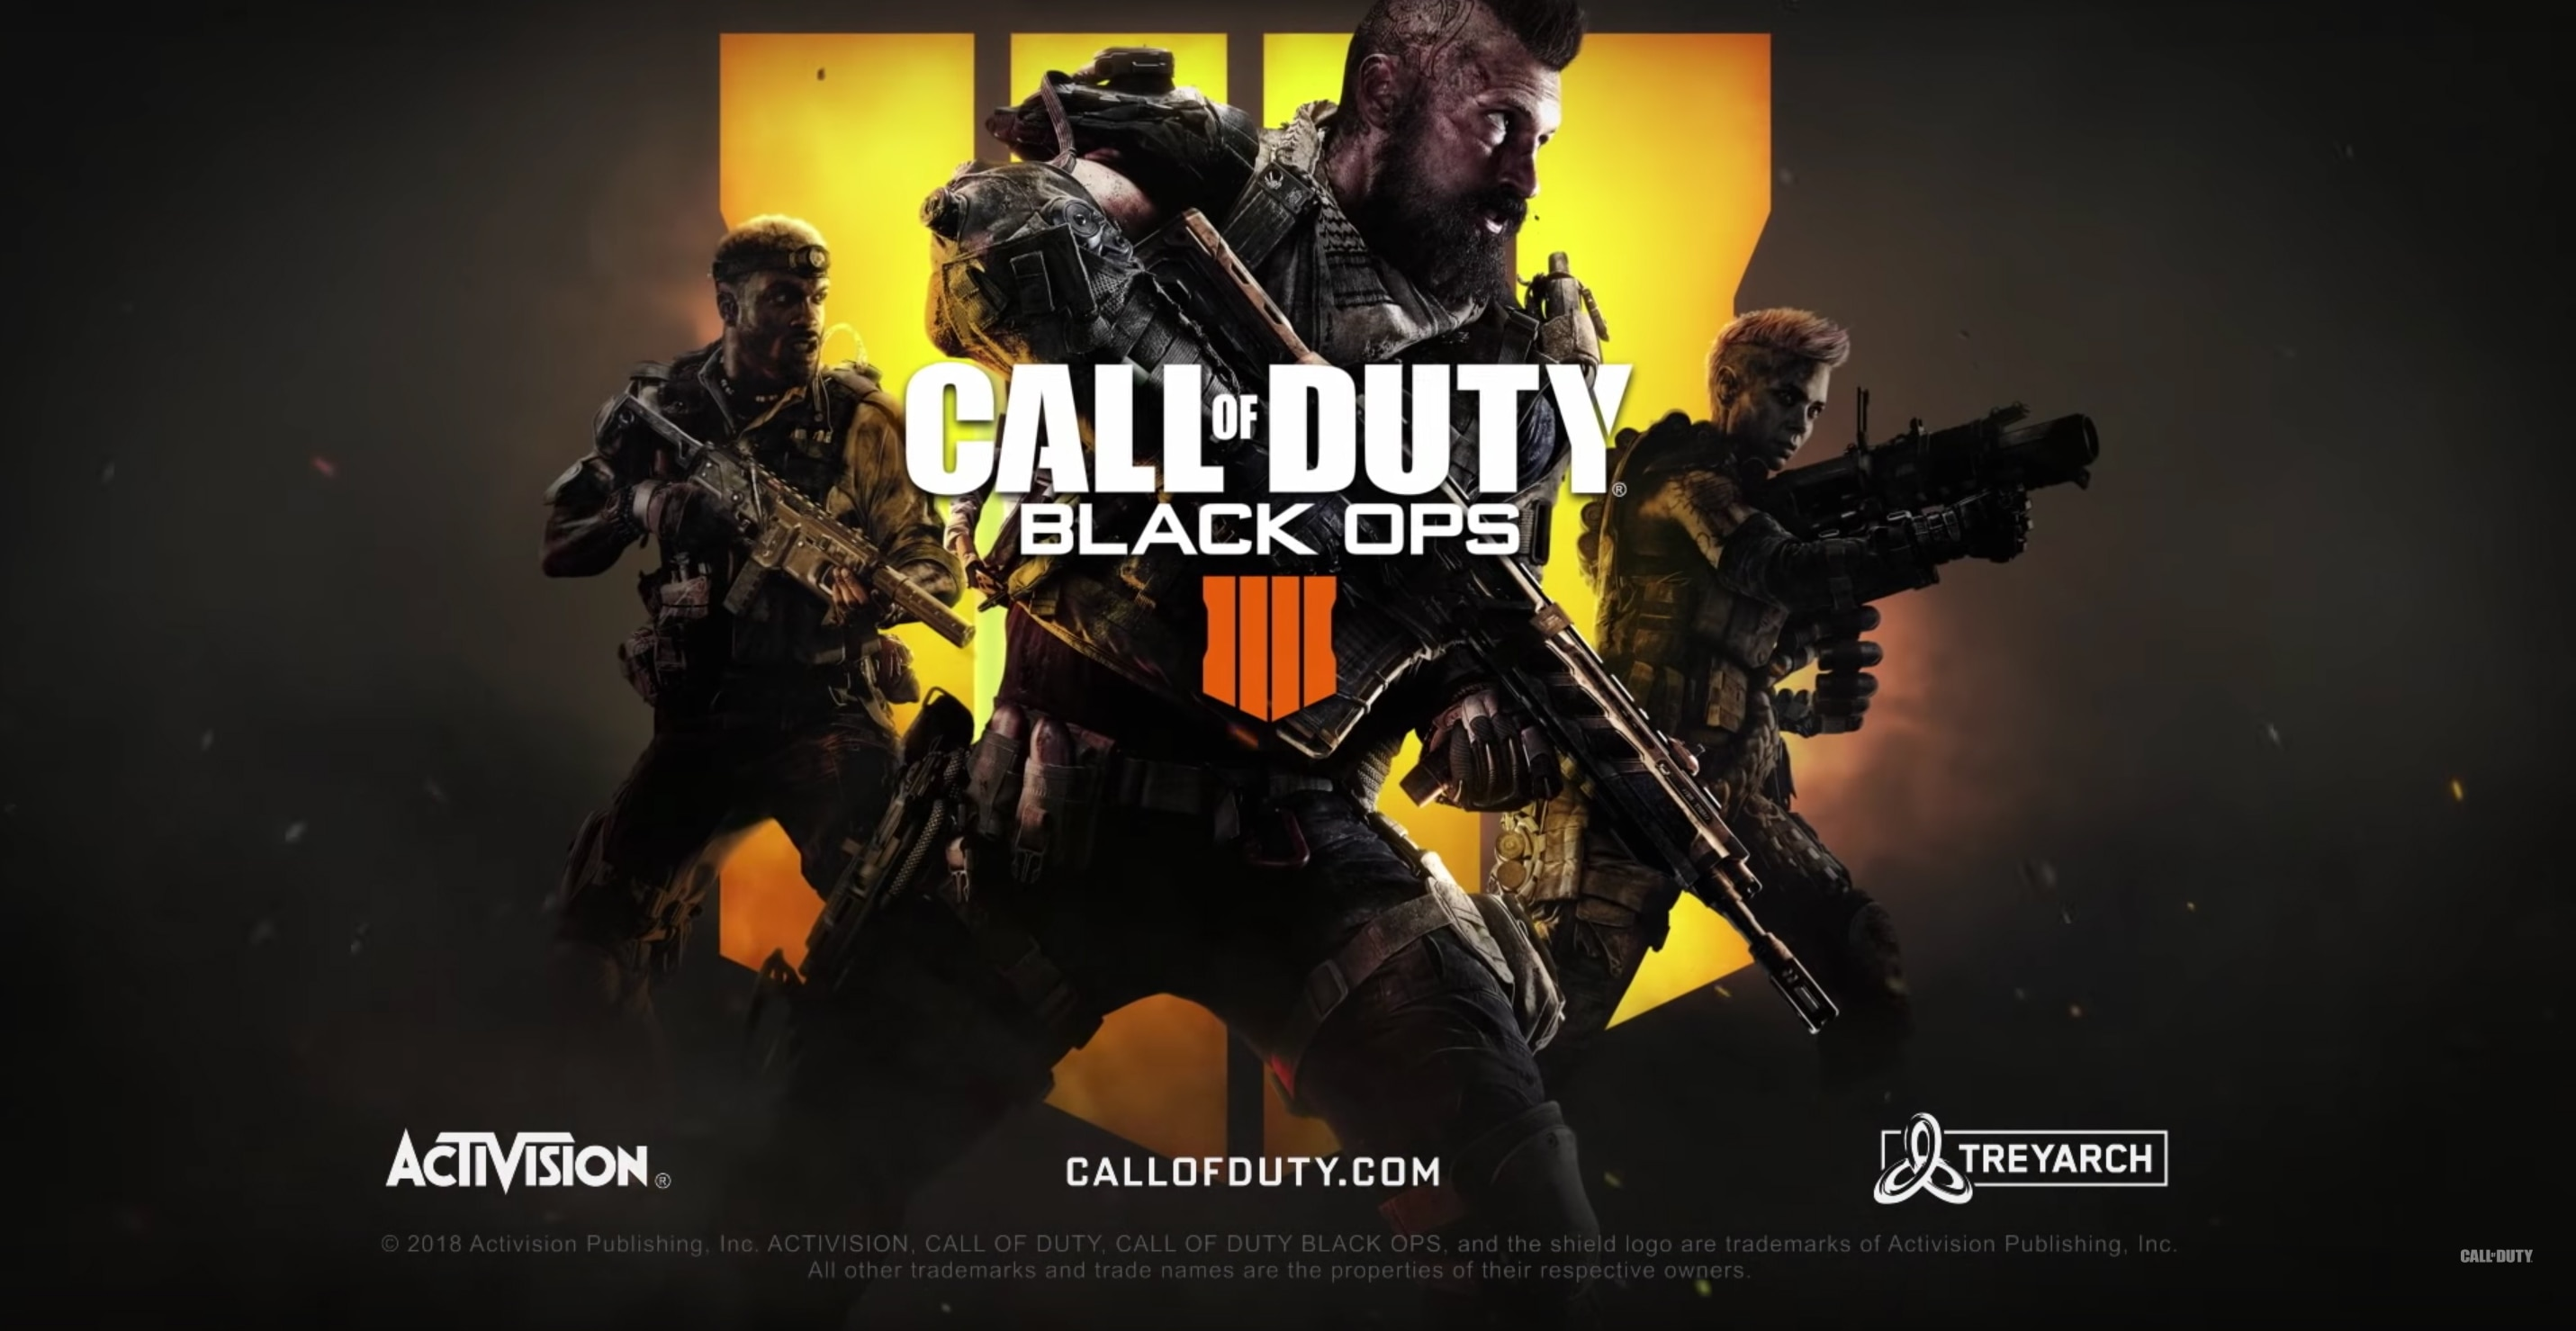 call of duty black ops 4 title - #SDCC18: CALL OF DUTY: BLACK OPS 4 - Zombie Teaser Is ABSOLUTE CHAOS!